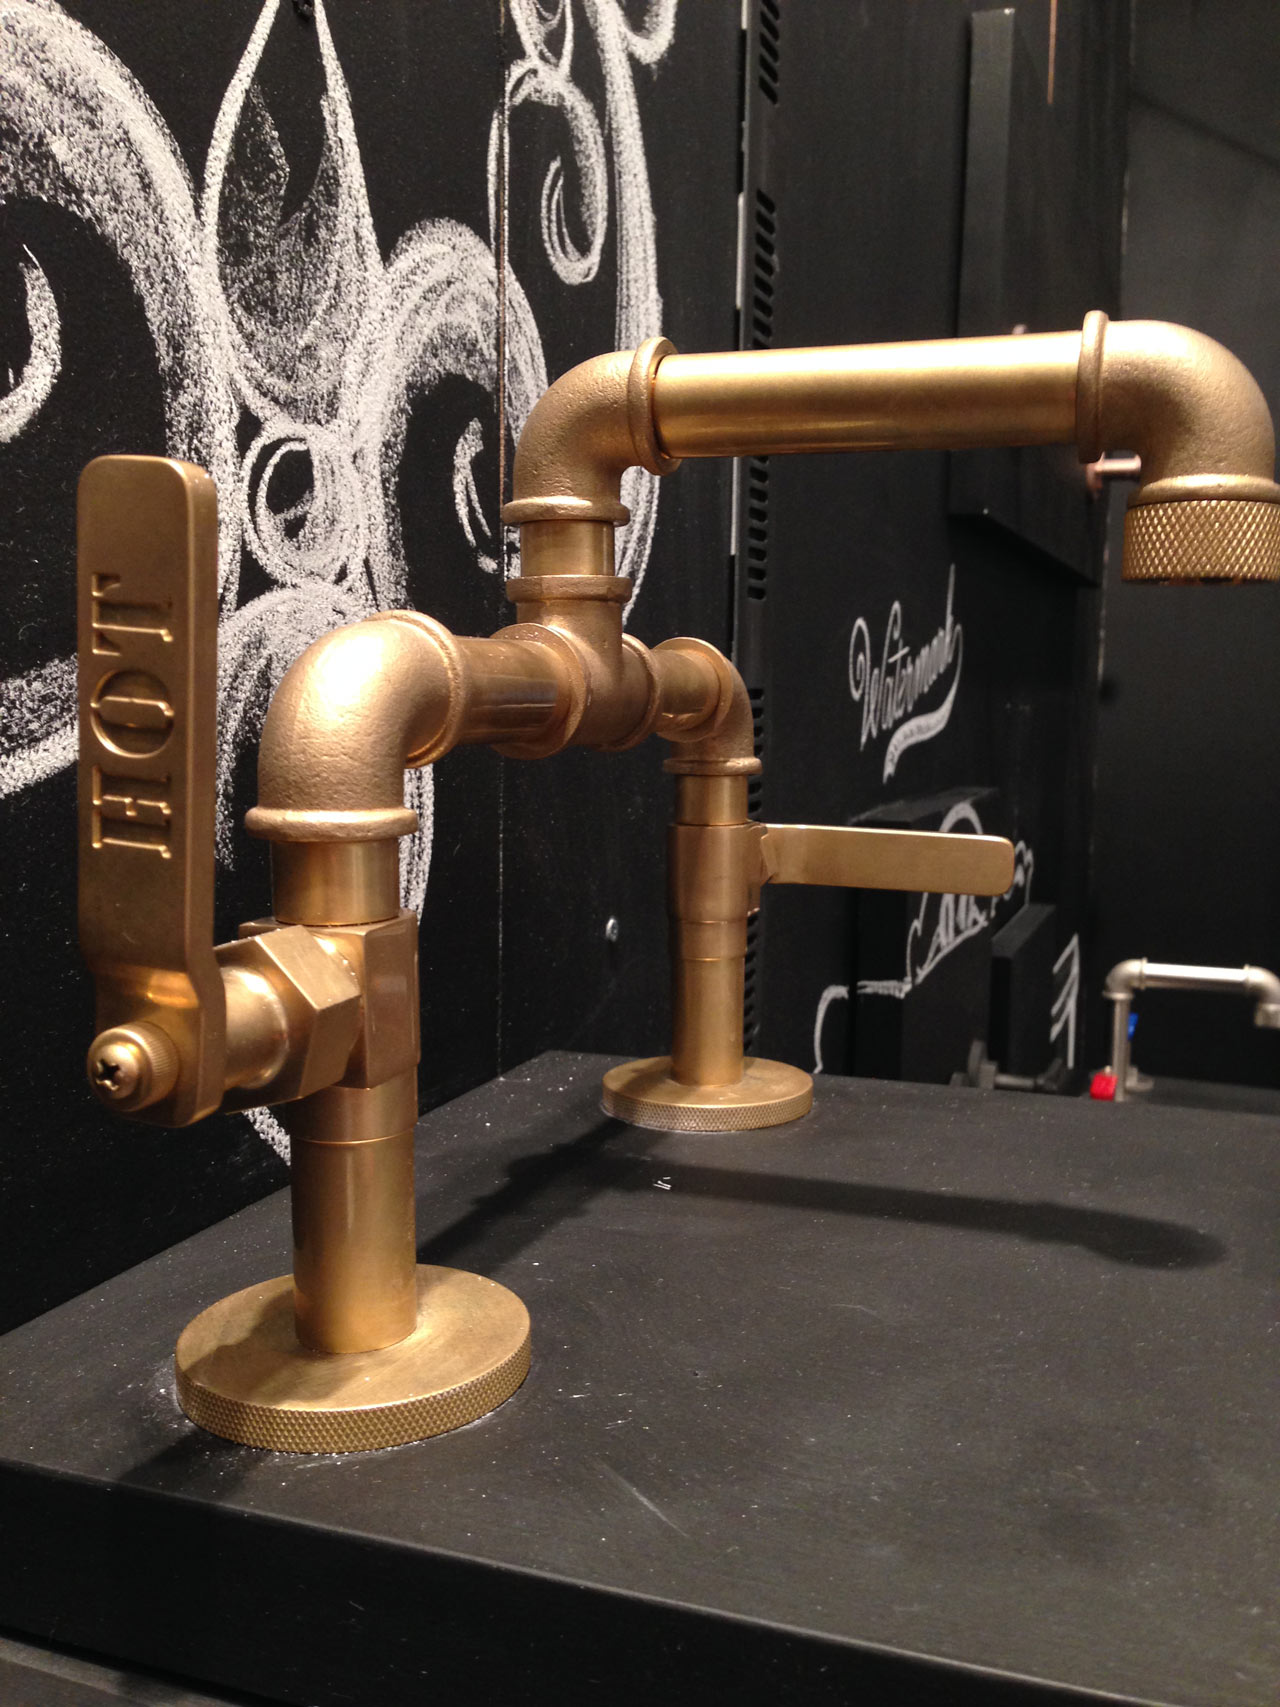 ICFF3-12-sink-not-sure-who-watermark maybe